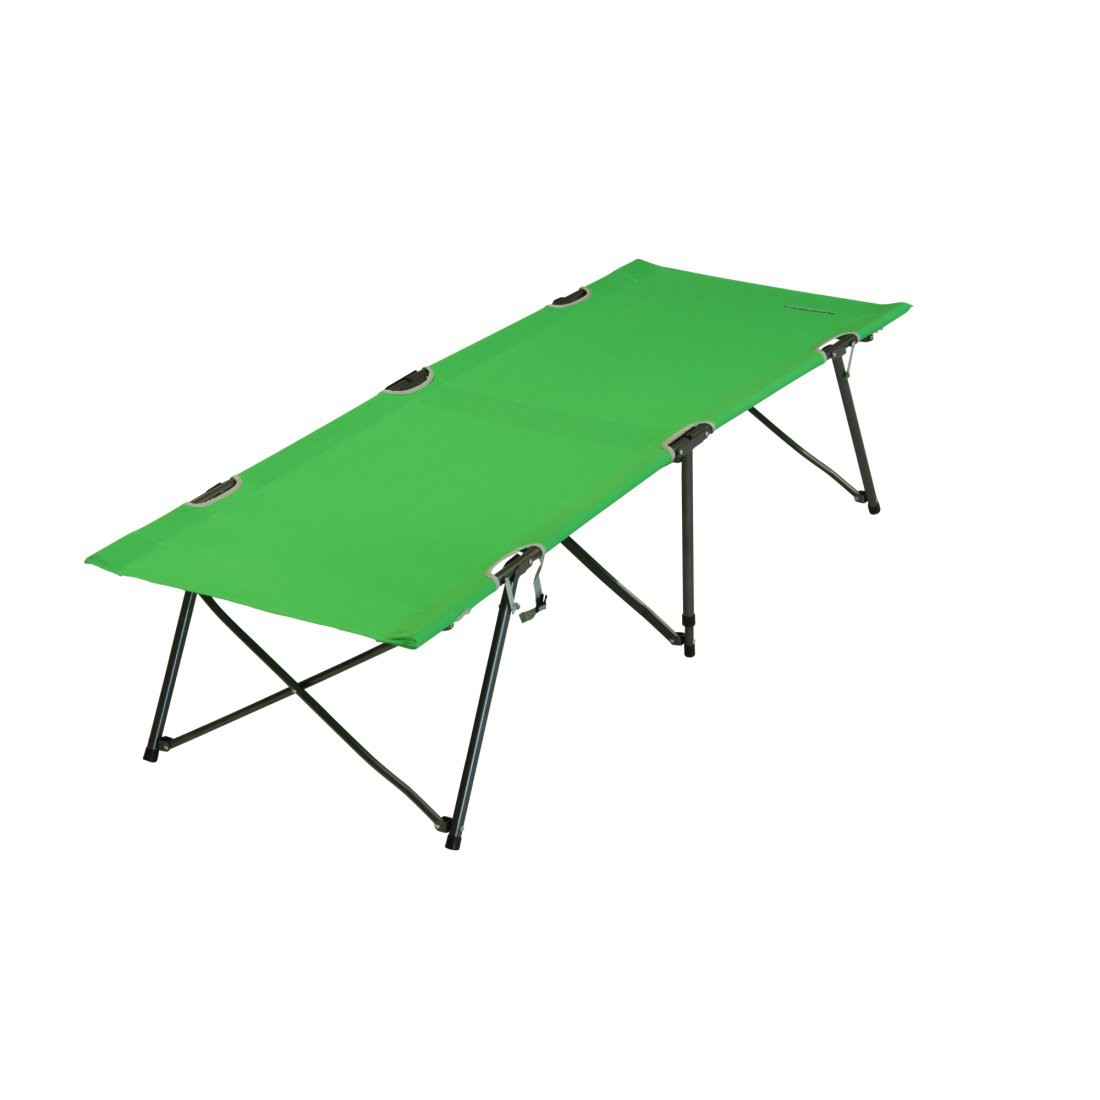 - Fridani TBG 190 - Camp Bed, Camping Lounger, Max 180 Kg,190x67x44